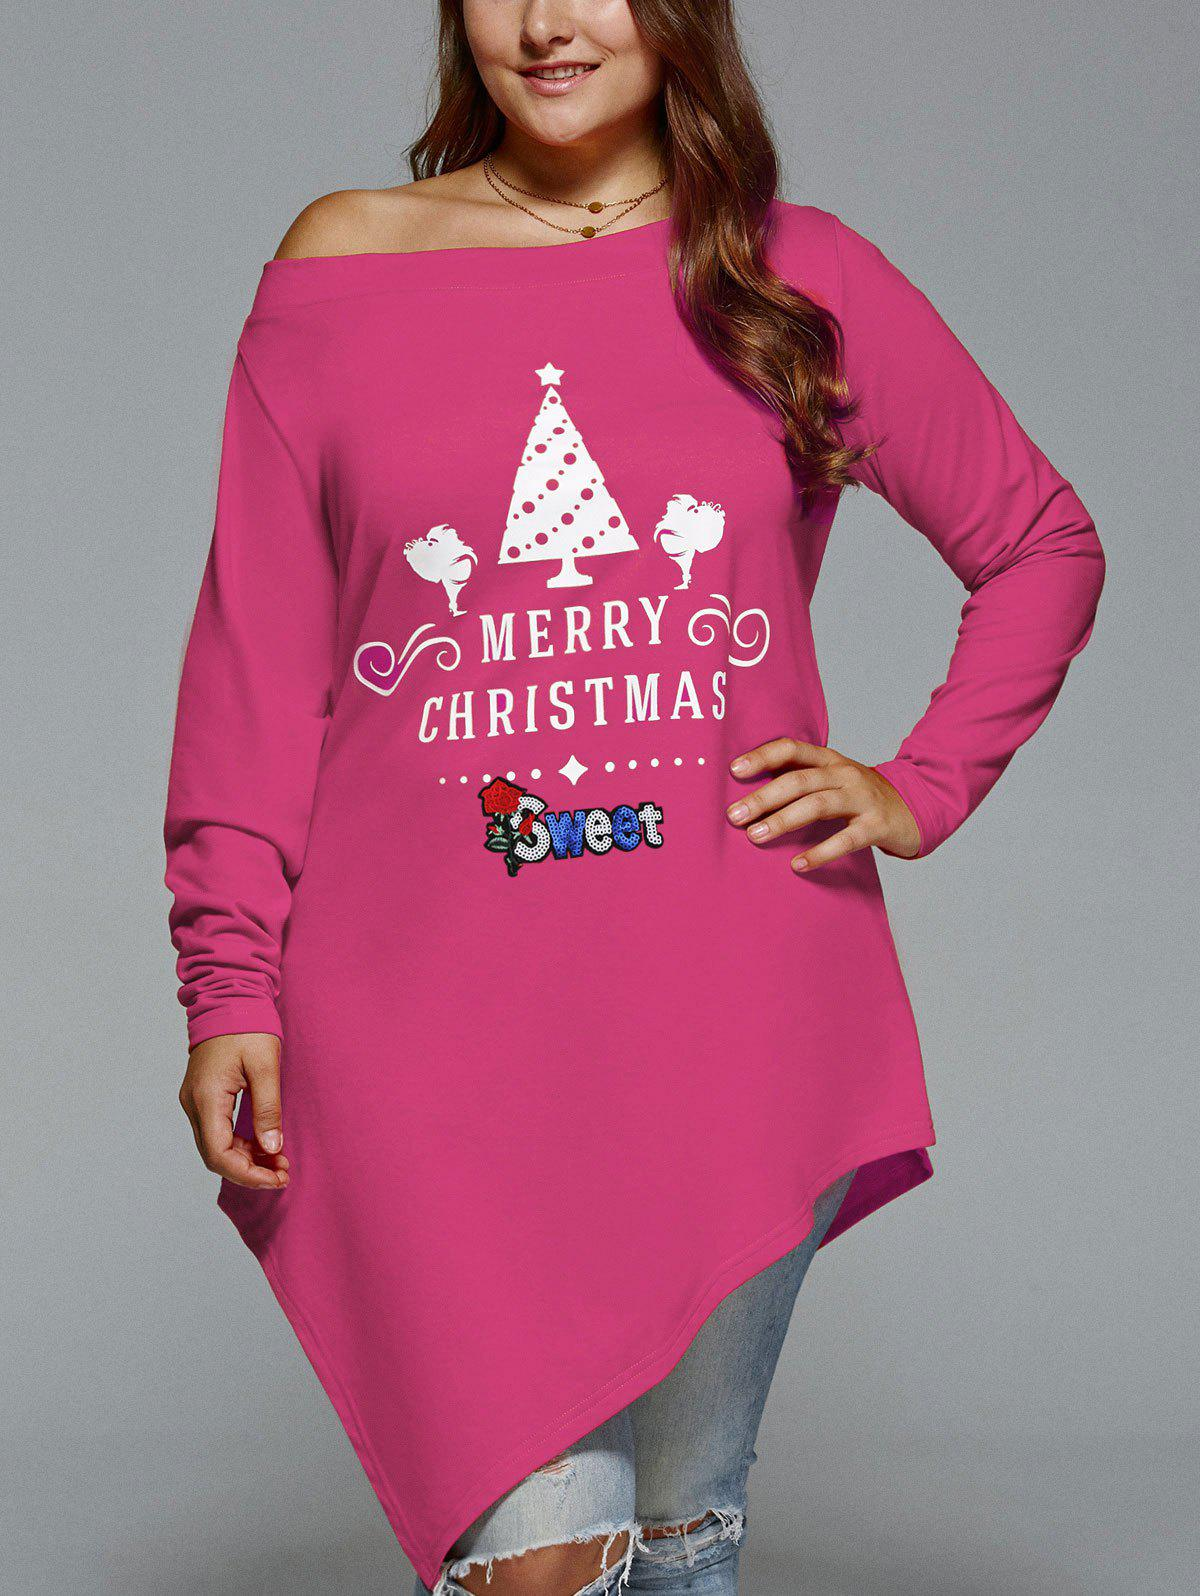 Christmas Skew Neck Plus Size Asymmetrical T-shirtWOMEN<br><br>Size: 3XL; Color: TUTTI FRUTTI; Material: Polyester,Spandex; Shirt Length: Long; Sleeve Length: Full; Collar: Skew Collar; Style: Casual; Season: Fall,Spring,Winter; Embellishment: Appliques; Pattern Type: Print; Elasticity: Elastic; Weight: 0.3600kg; Package Contents: 1 x T-shirt;